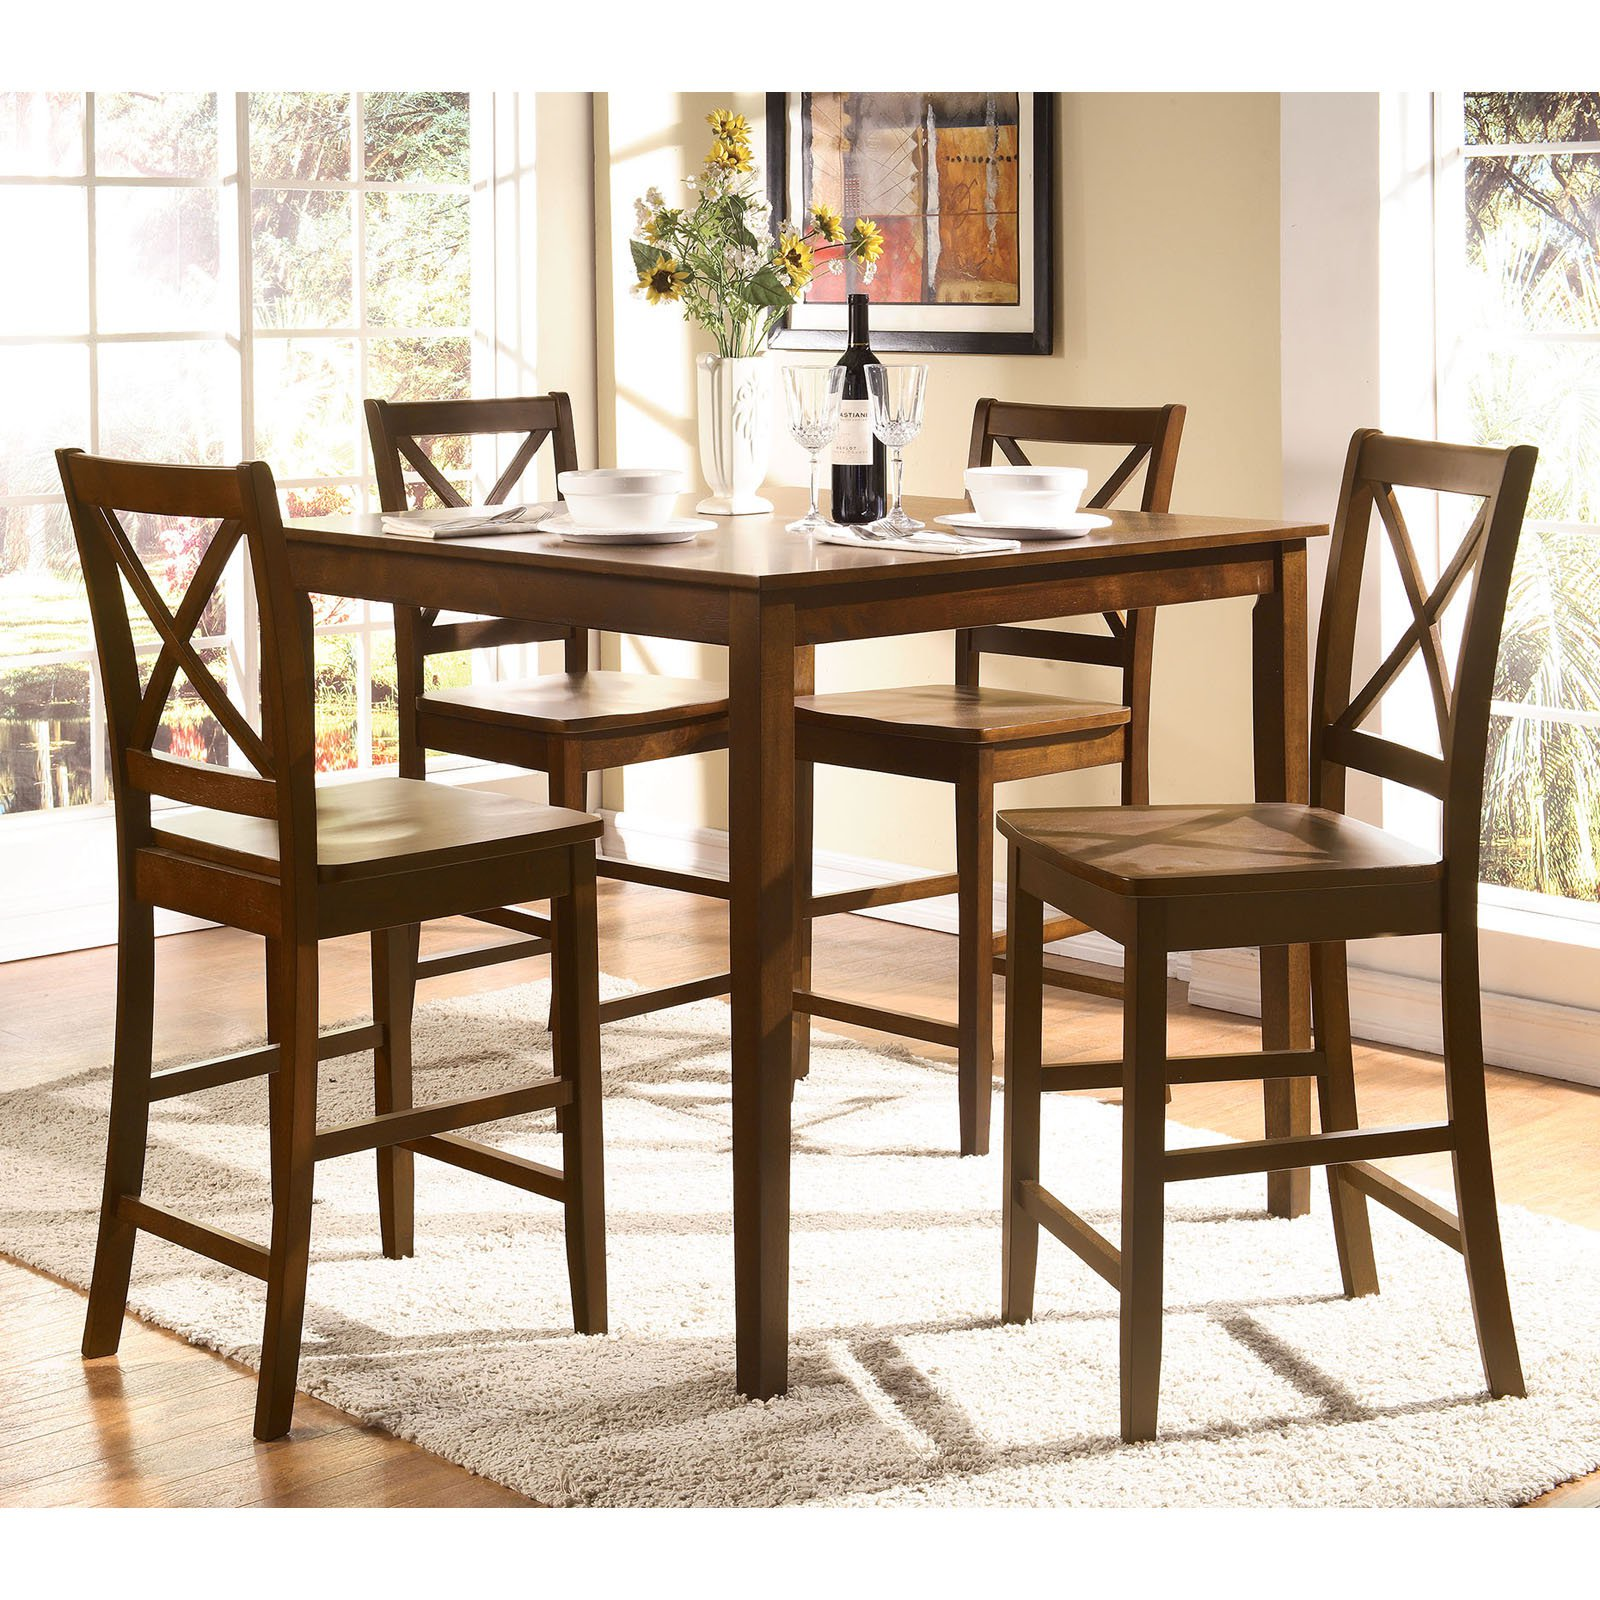 Acme Furniture Martha 5 Piece Counter Height Dining Table Set